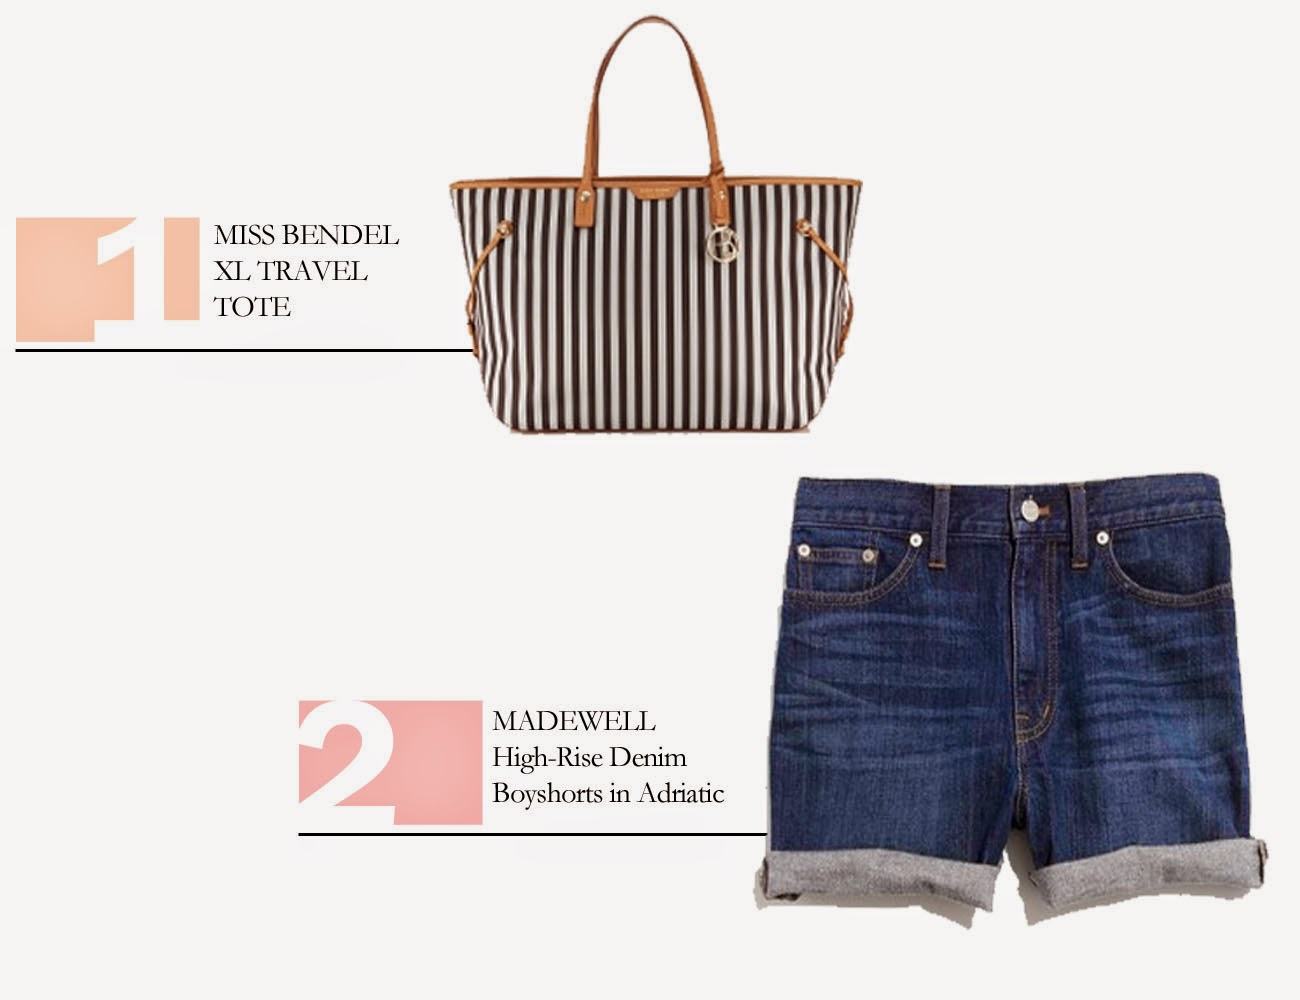 1. Henri Bendel MISS BENDEL XL TRAVEL TOTE // 2. Madewell High-Rise Denim Boyshorts in Adriatic